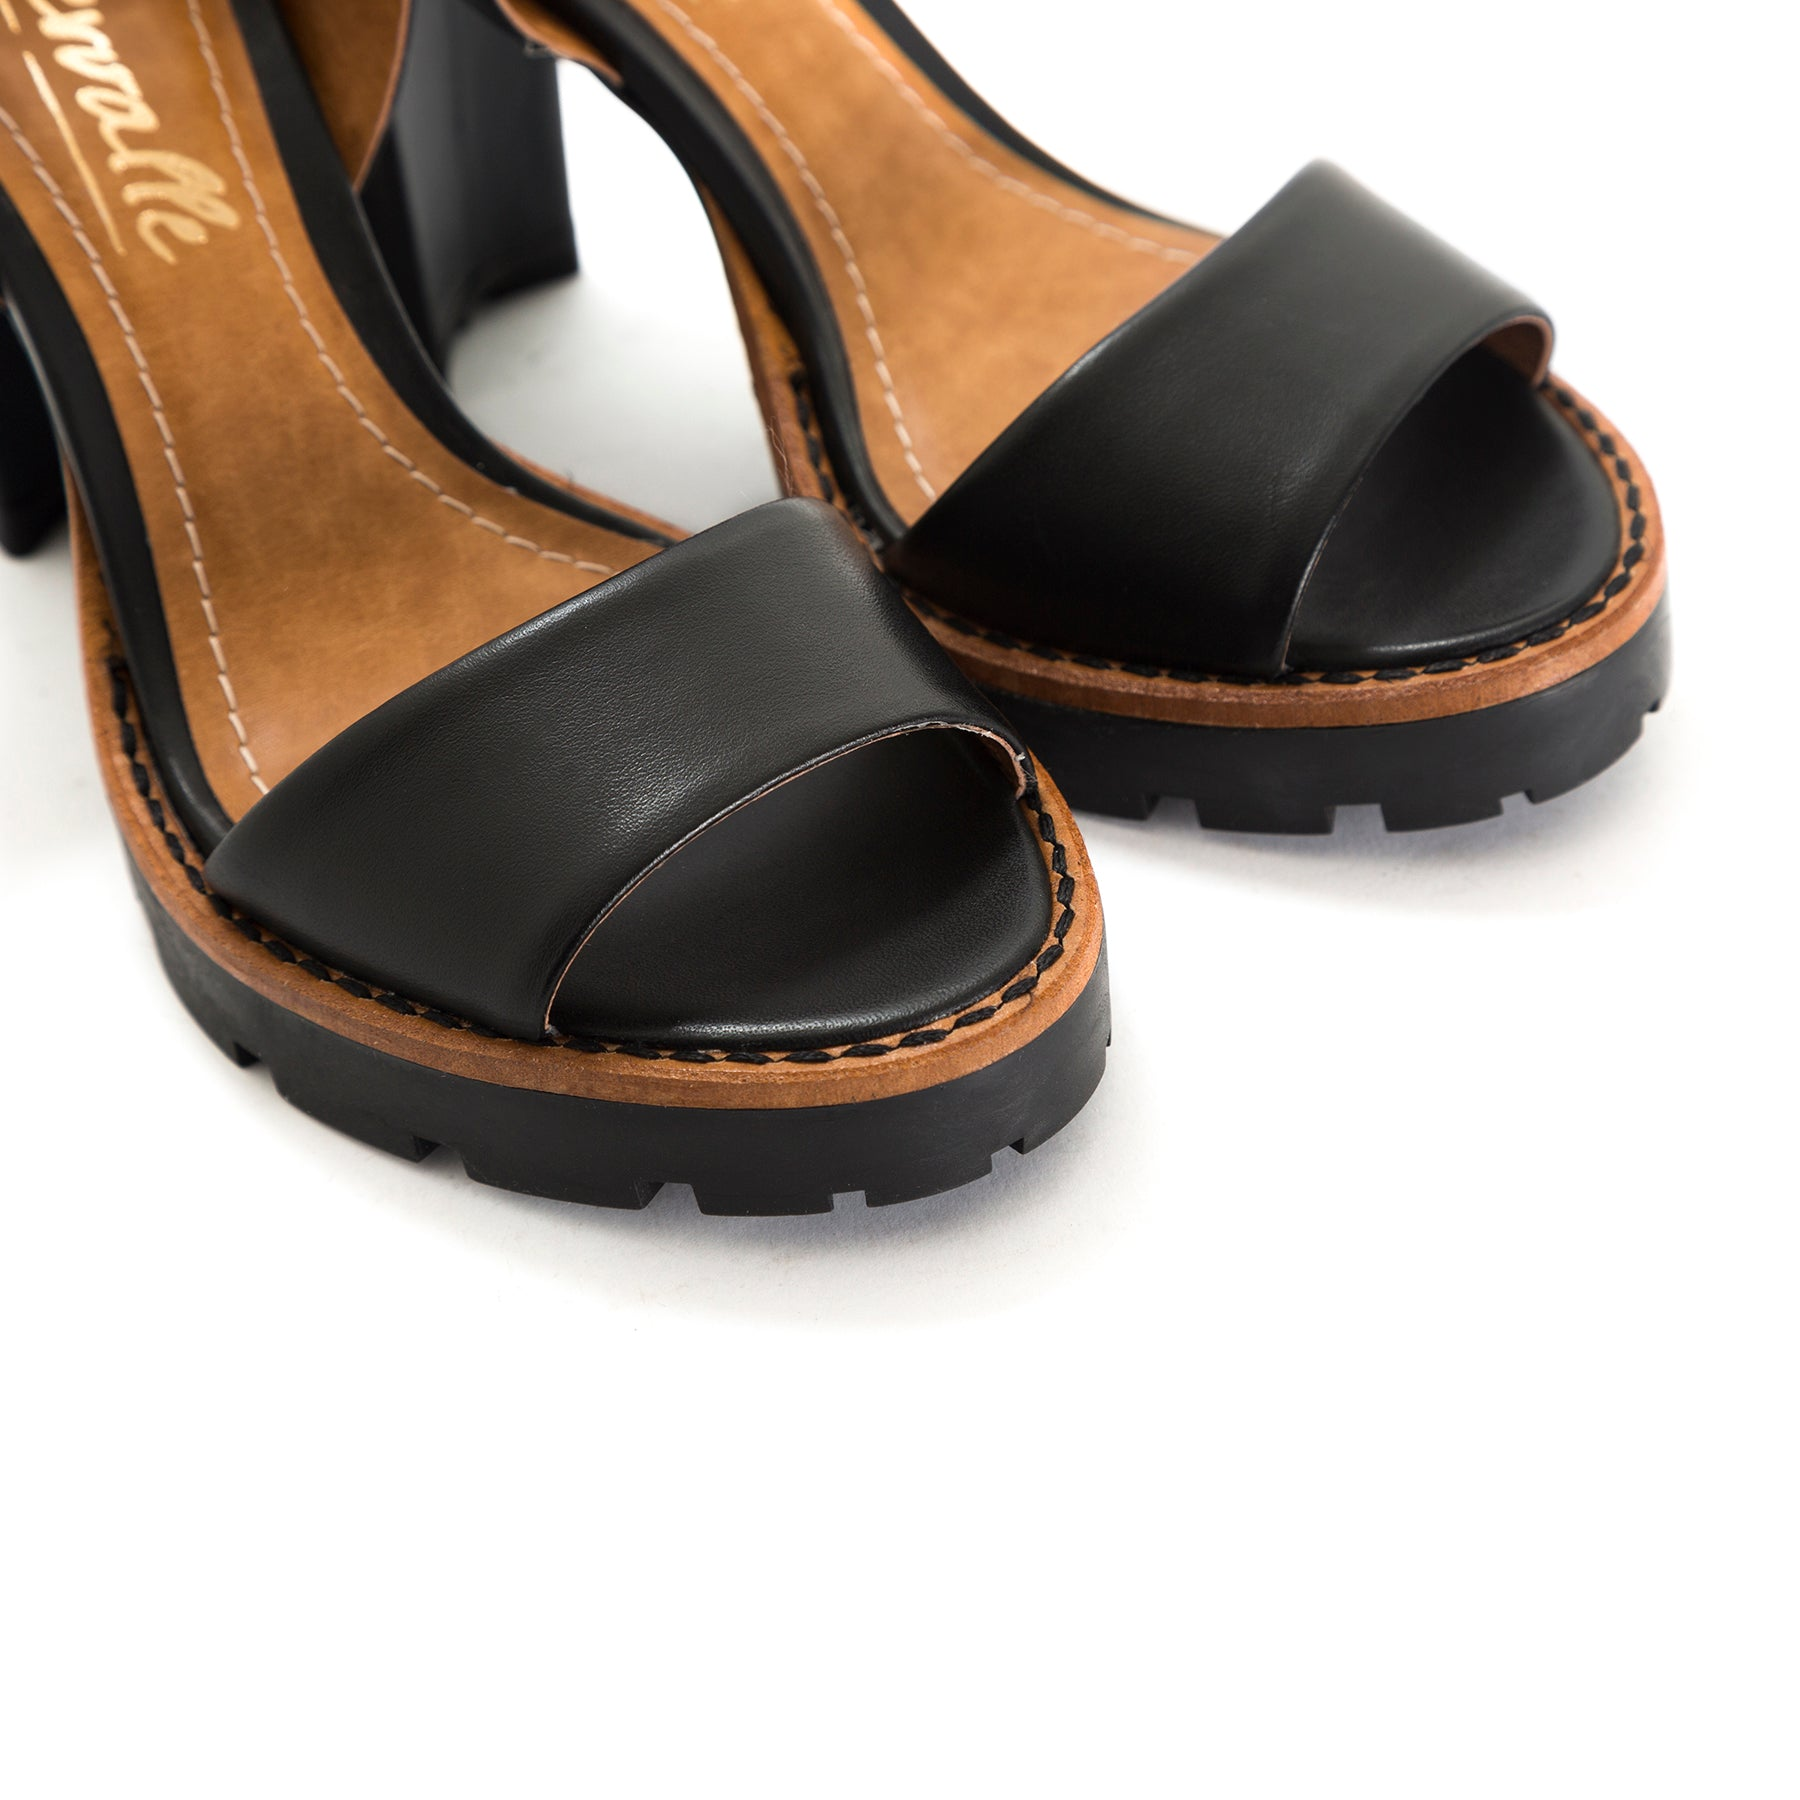 Deena Black Leather Sandals